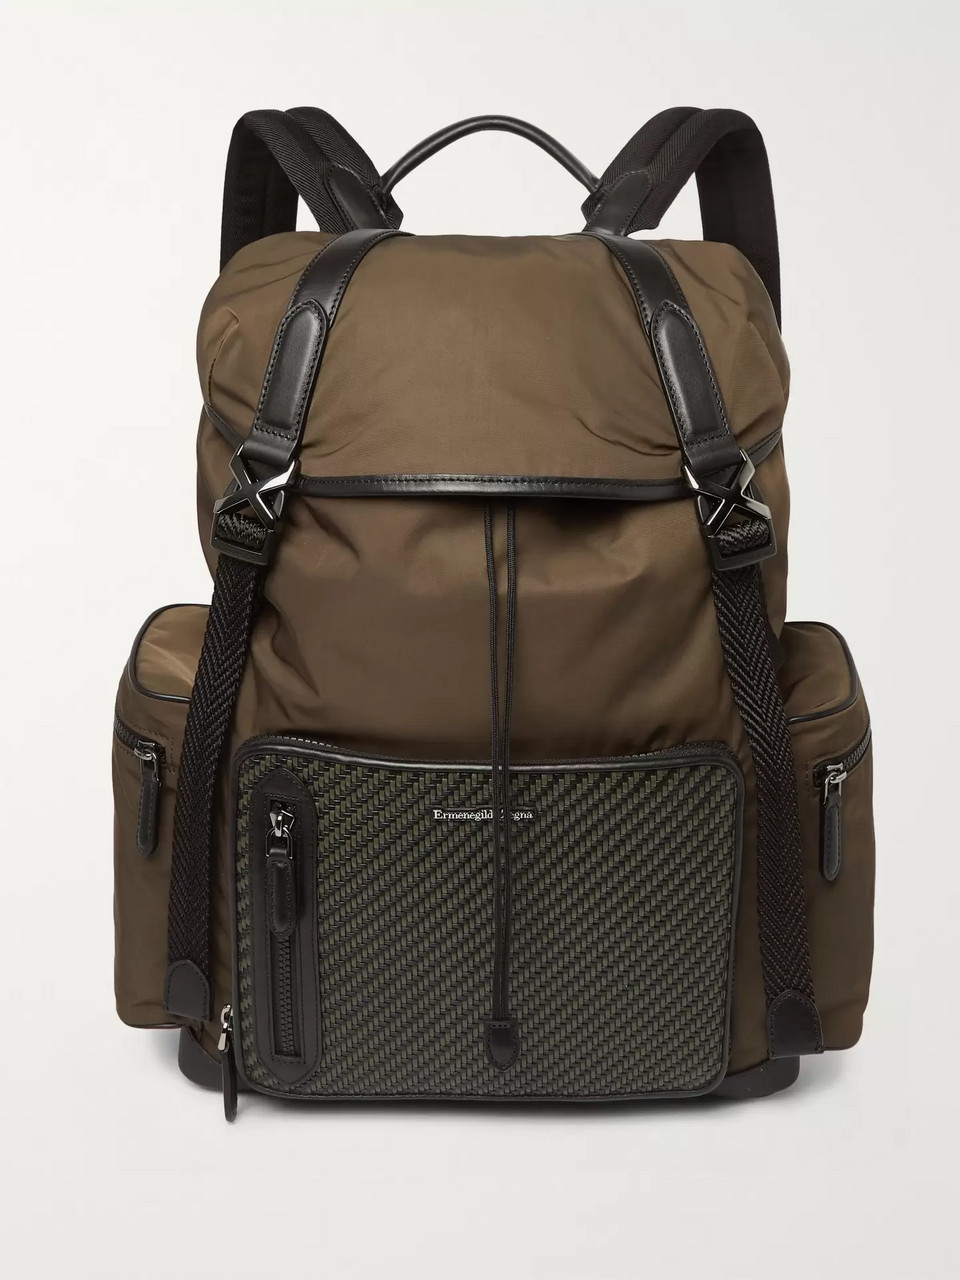 Ermenegildo Zegna Pelle Tessuta Leather, Mesh and Nylon Backpack